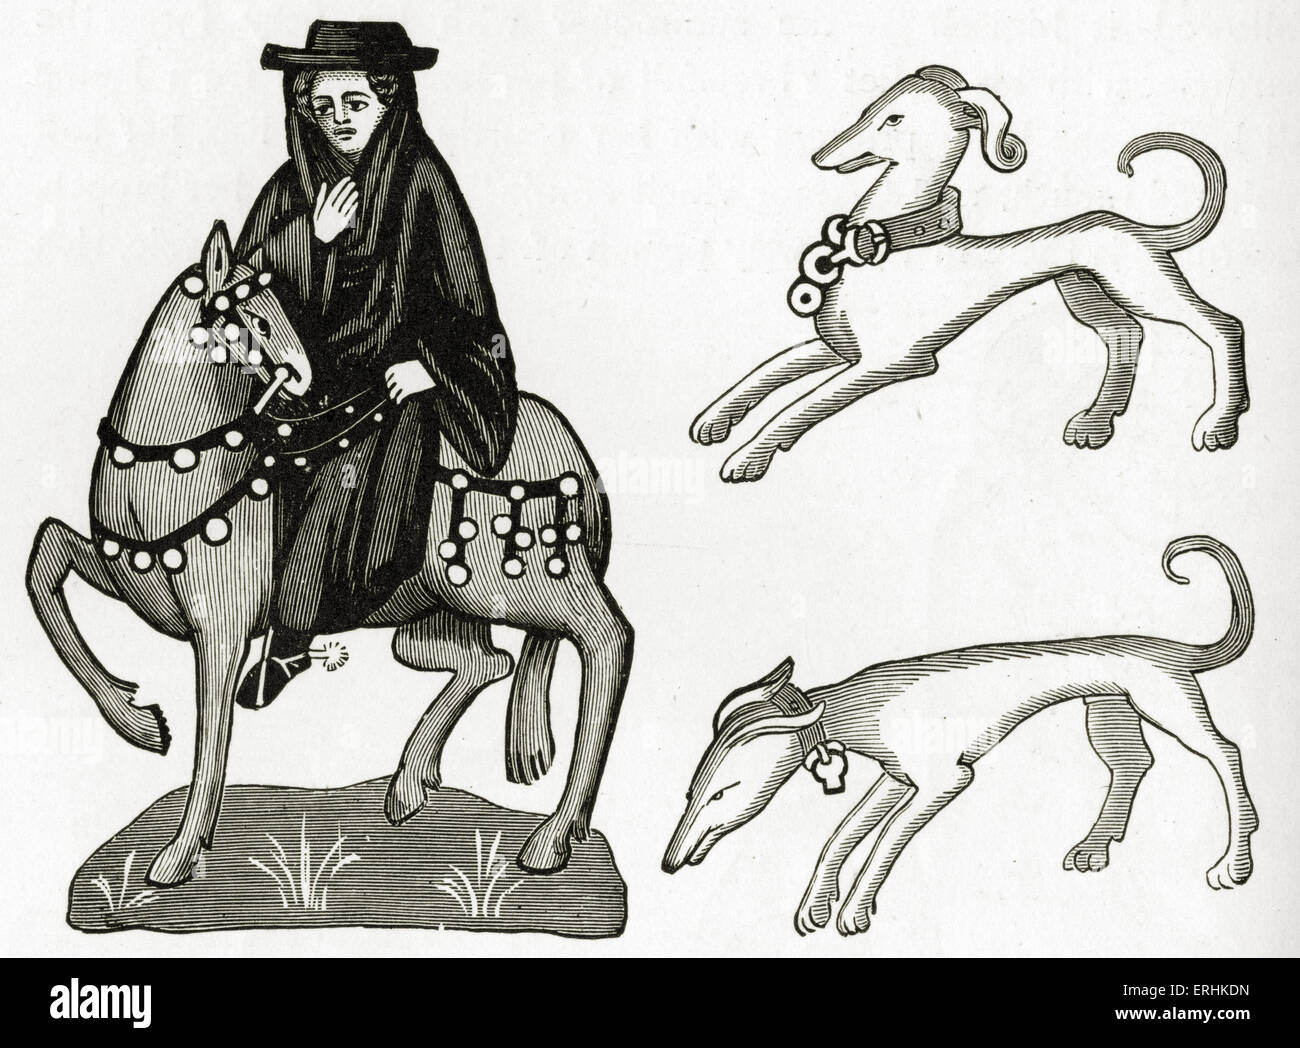 essay questions canterbury tales Geoffrey chaucer is known as the father of english poetry, particularly for his brilliant insight of human nature in the canterbury tales, his illuminating views of.